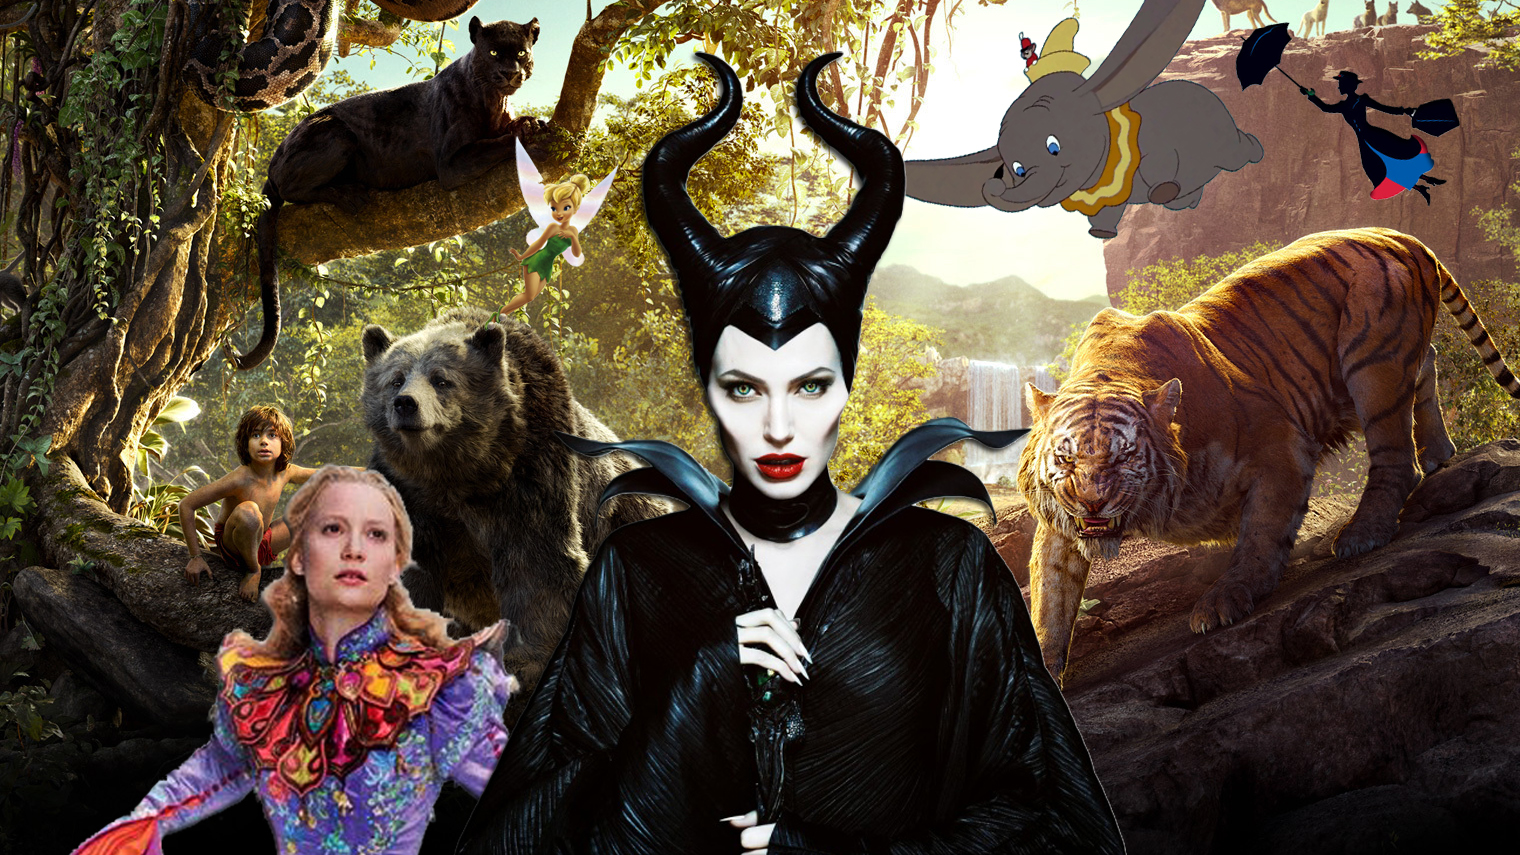 Maleficent 2 Jungle Book 2 And More Announced